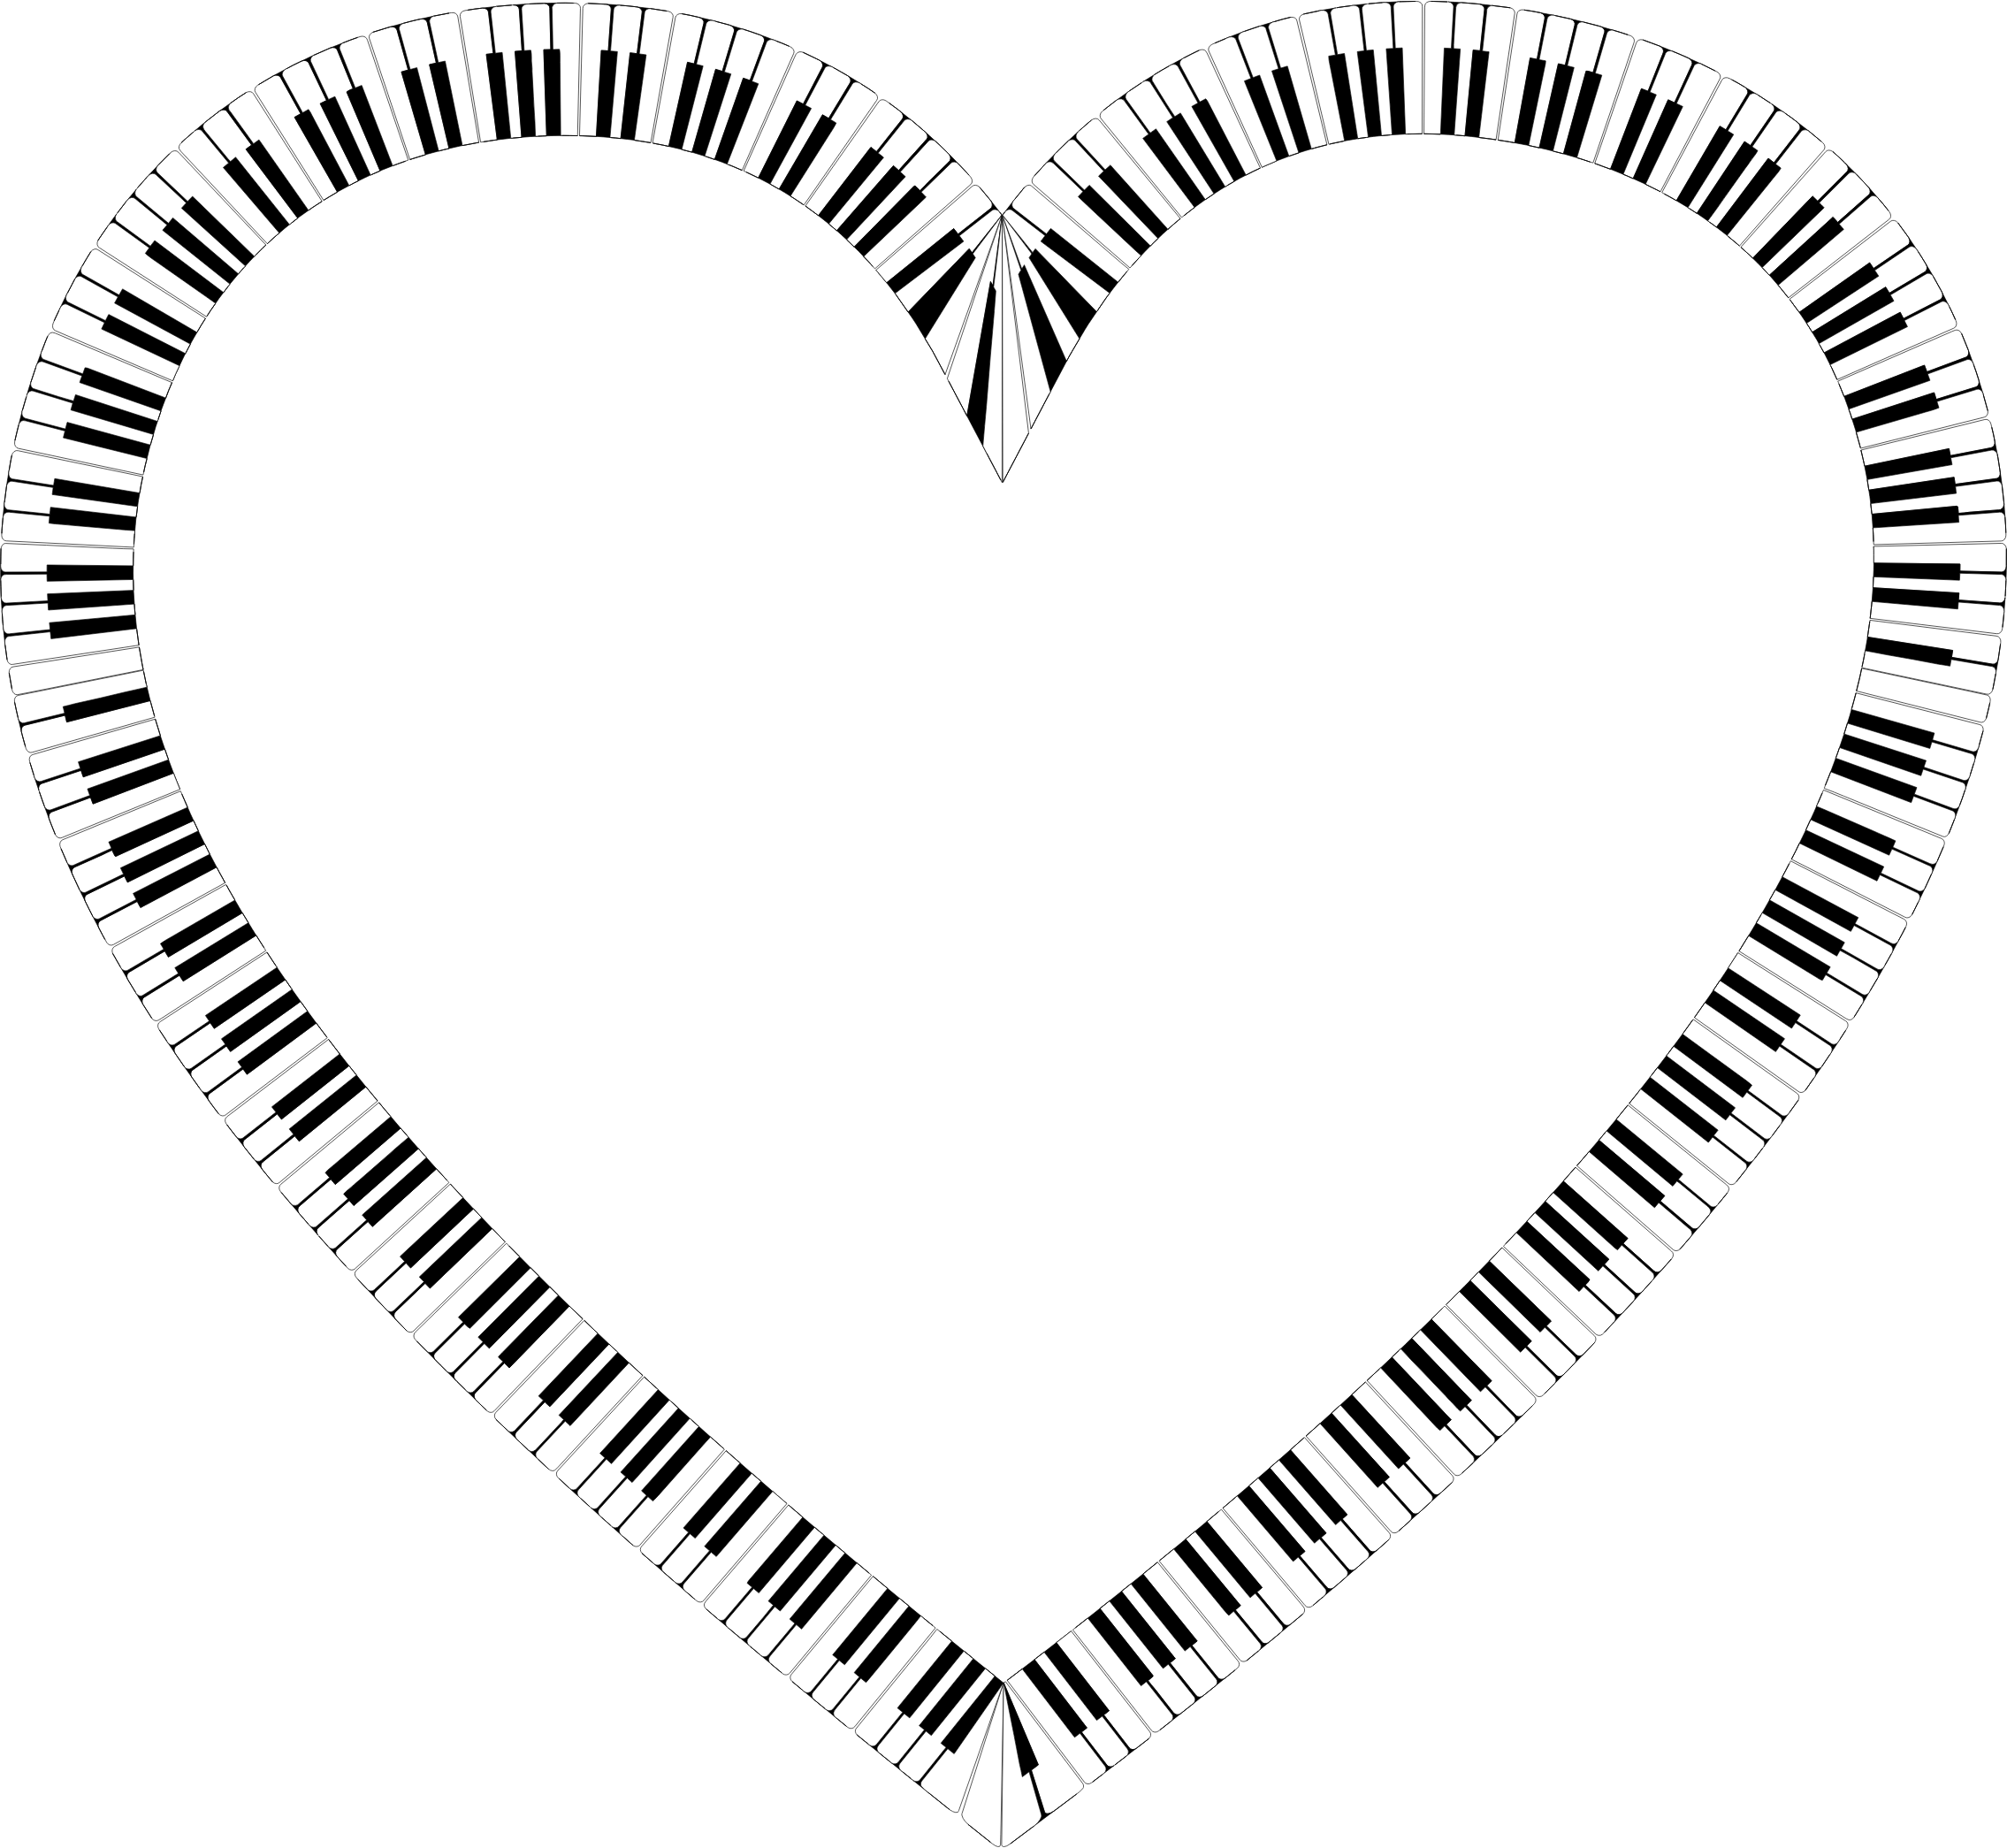 Keys heart big image. White clipart piano